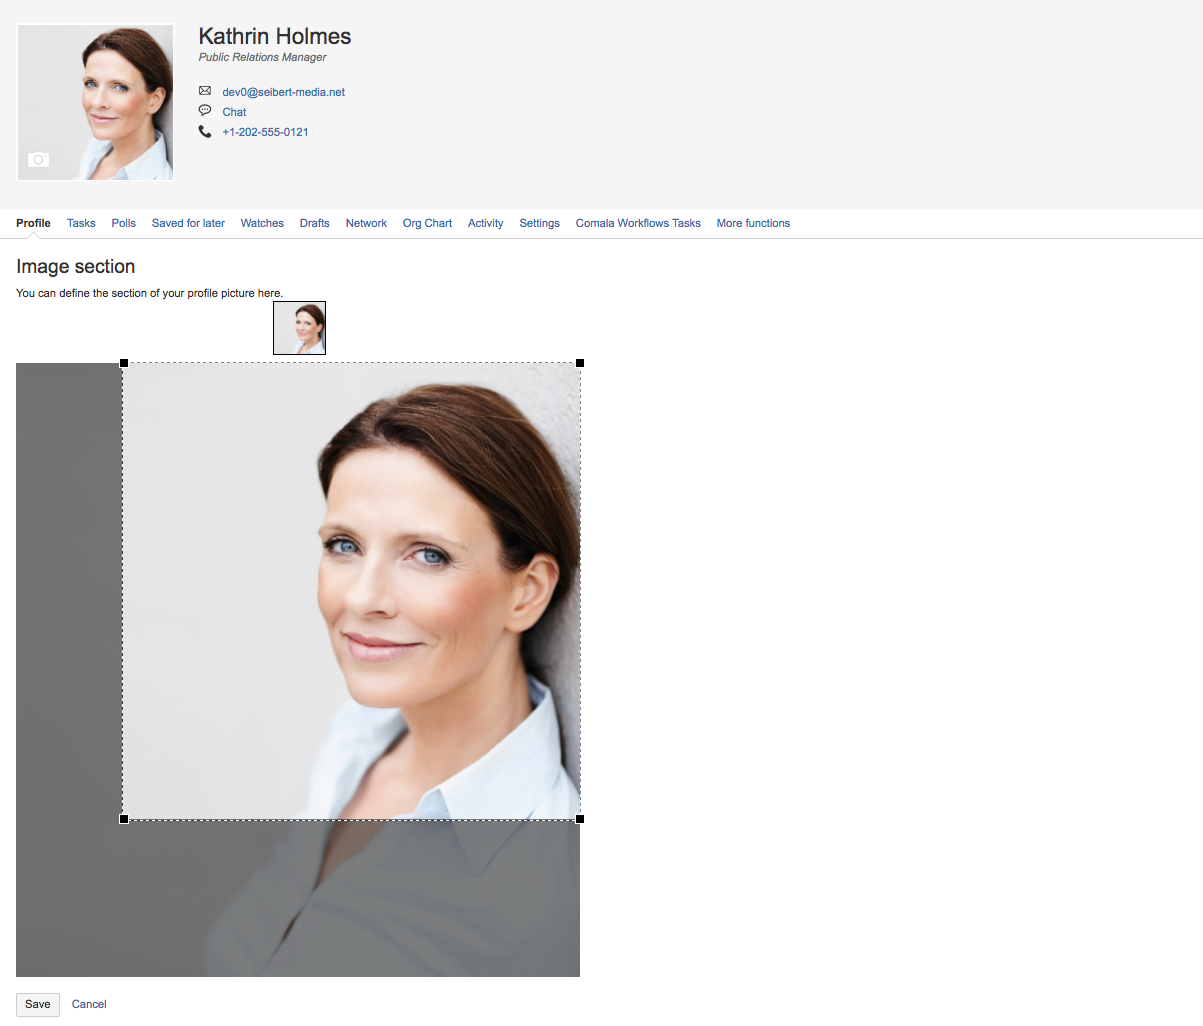 Selecting the profile picture area